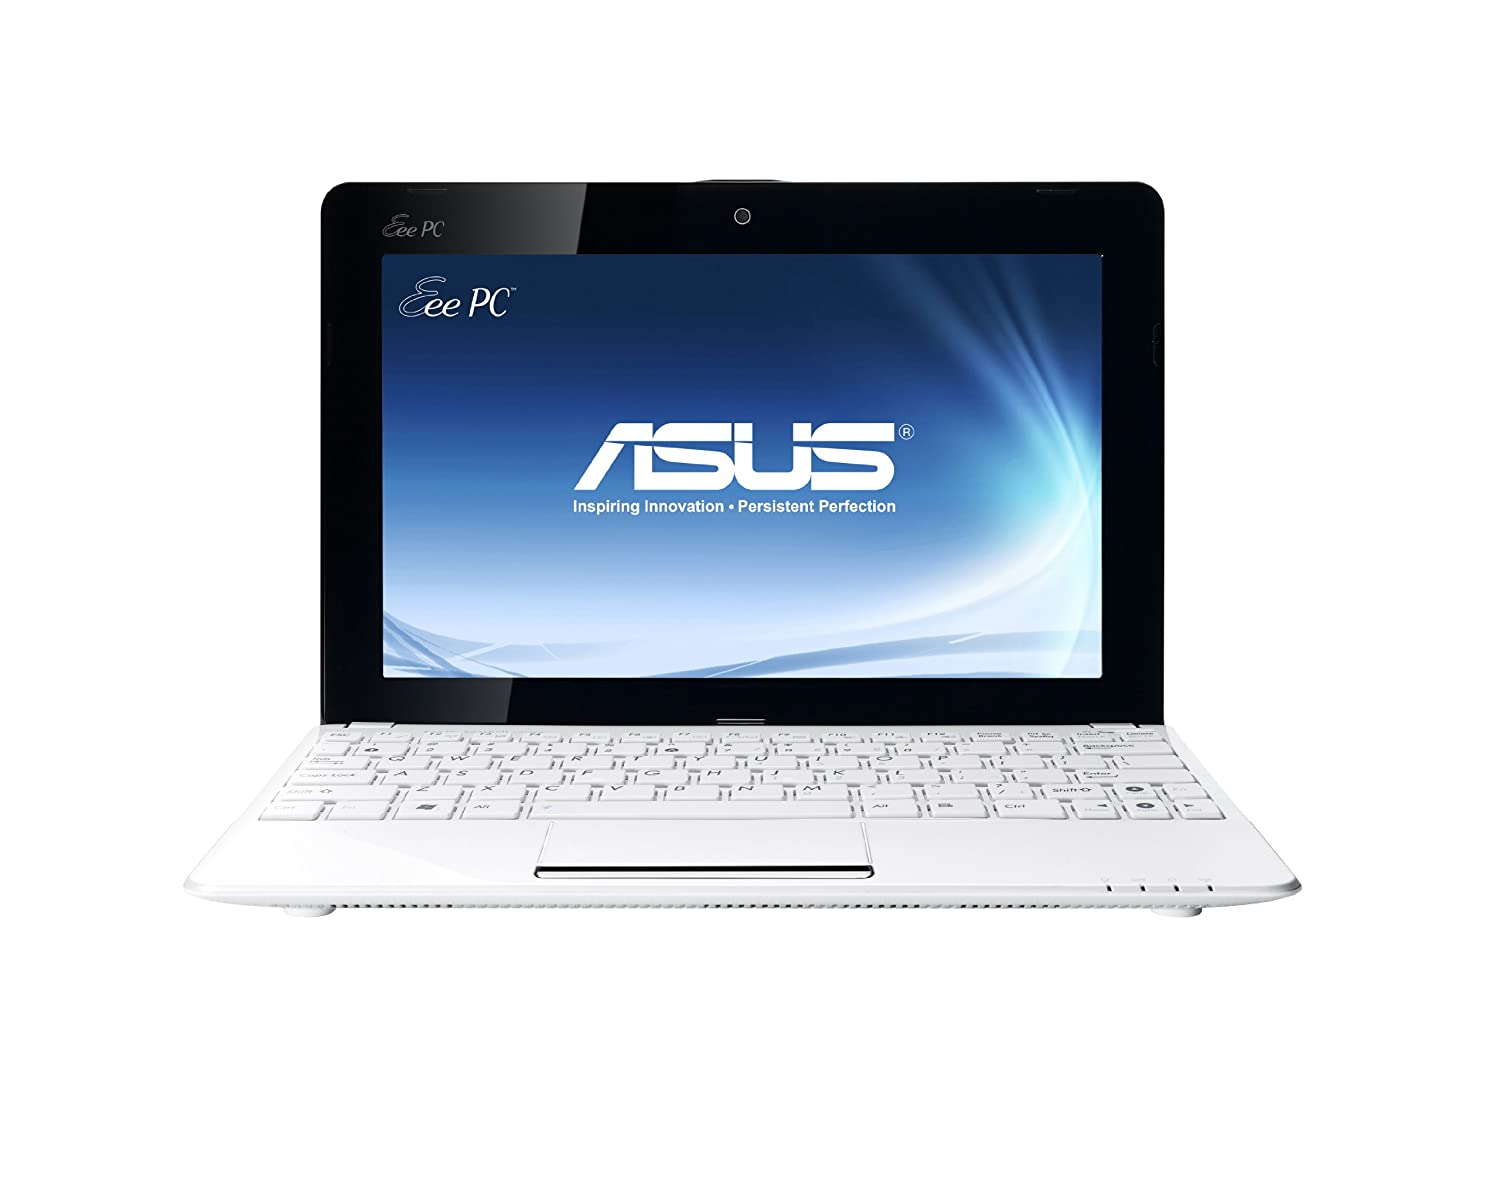 Asus Eee PC 1015BX Realtek ALC269 Audio Drivers for Mac